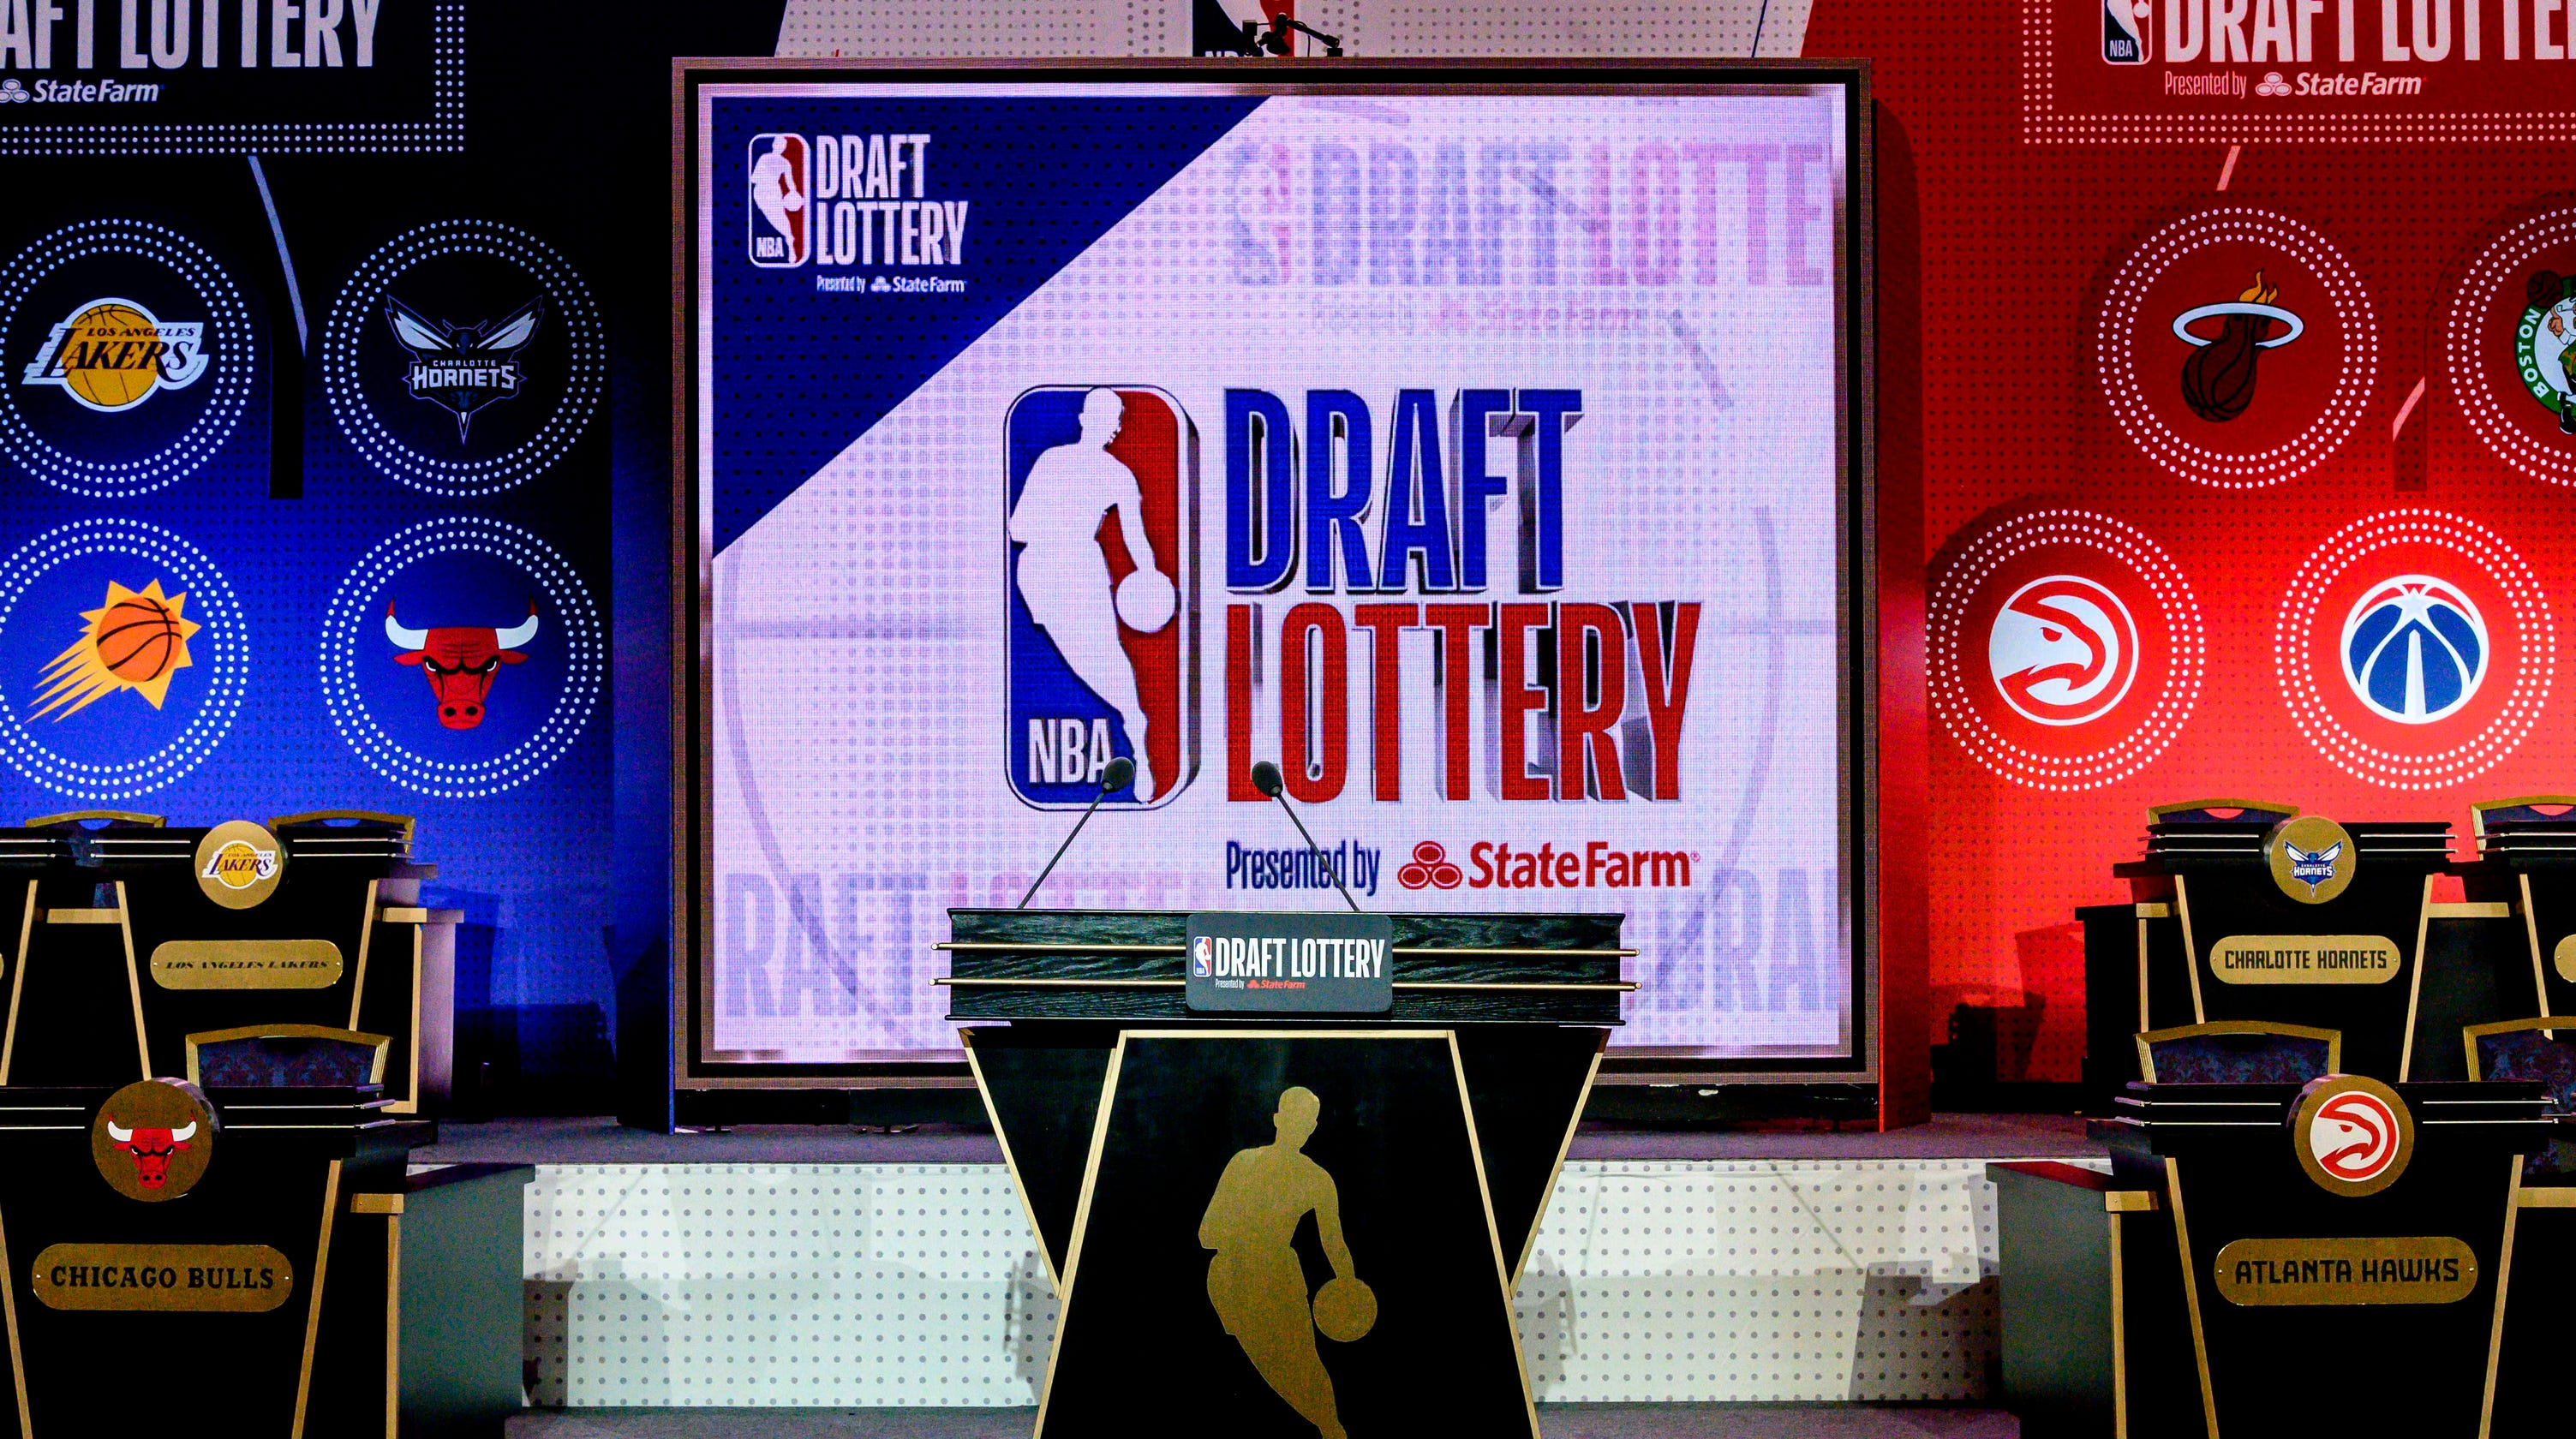 nba draft lottery pelicans win overall